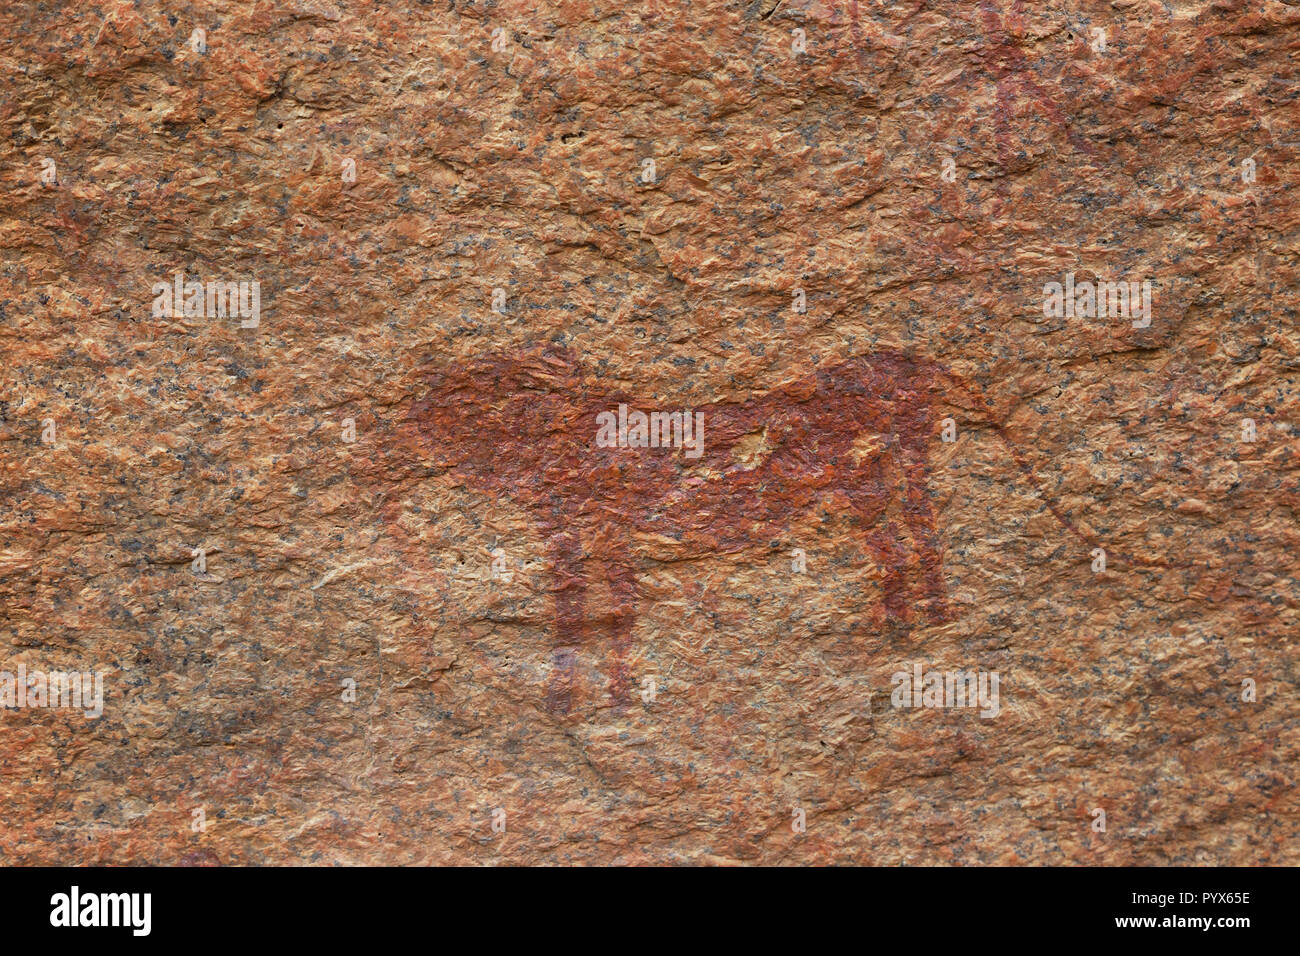 Namibia rock painting - ancient rock art by bushmen showing a lion, about 2000 years old; Small Bushman Paradise, Spitzkoppe, Namibia Africa - Stock Image